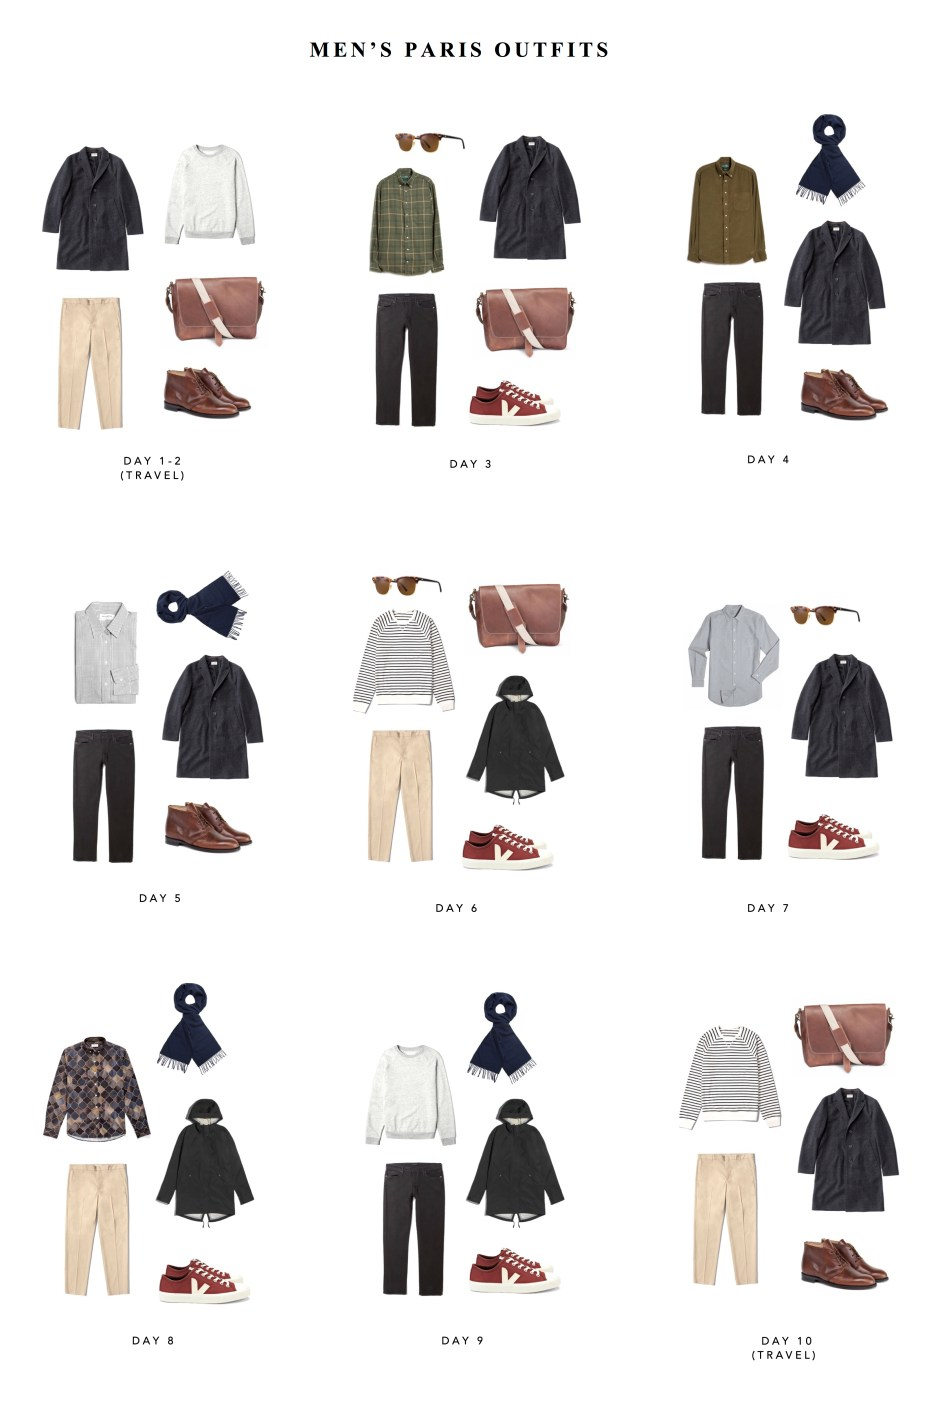 Men's Paris packing list outfit ideas